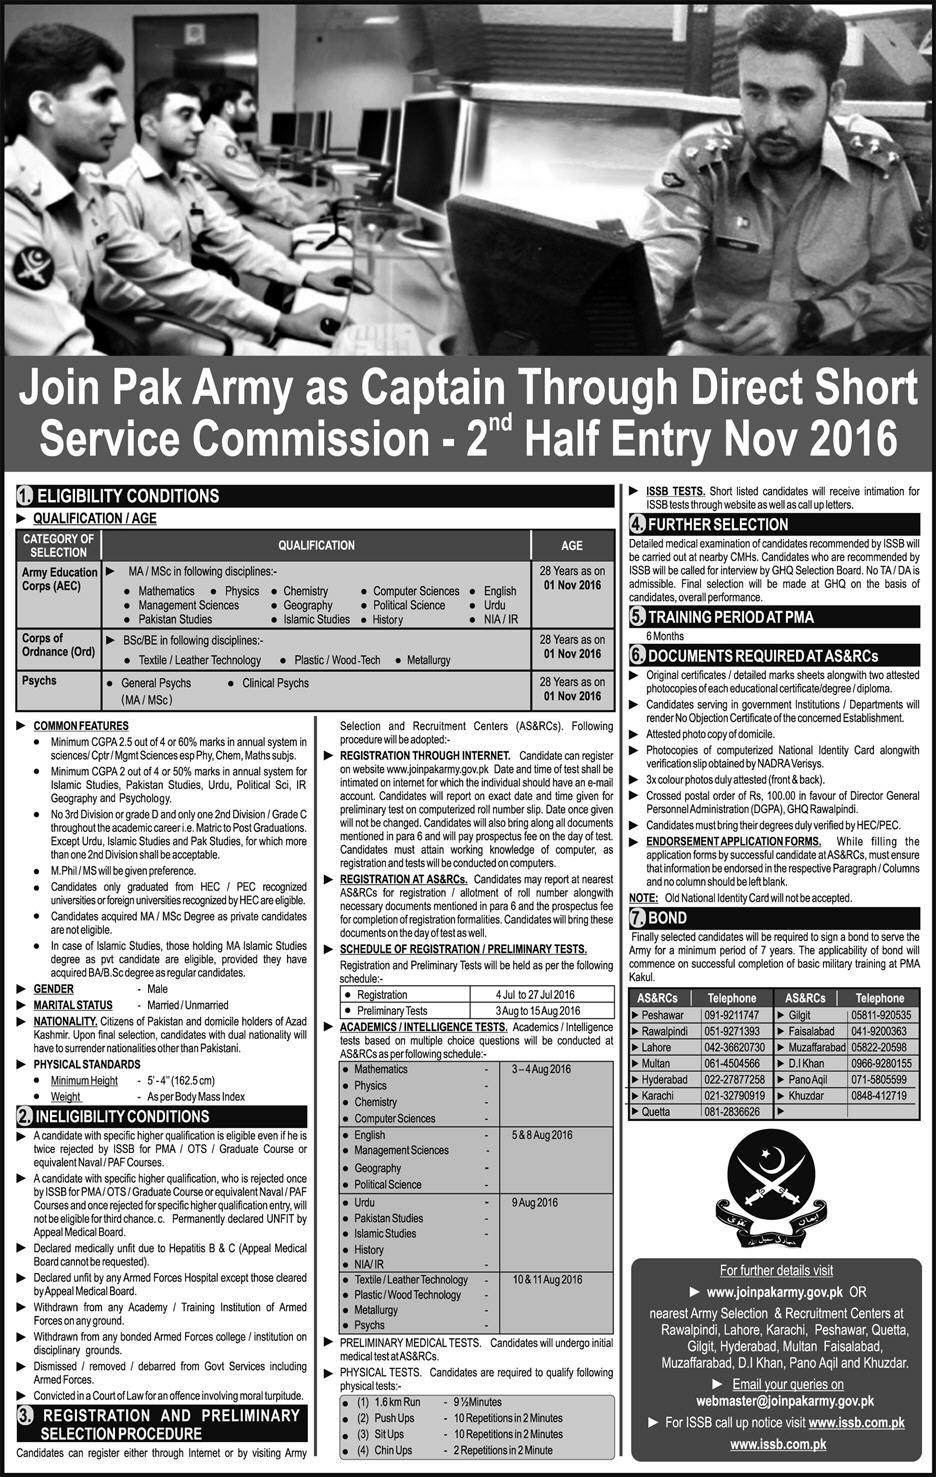 Join Pakistan Army Through Short Service Commission